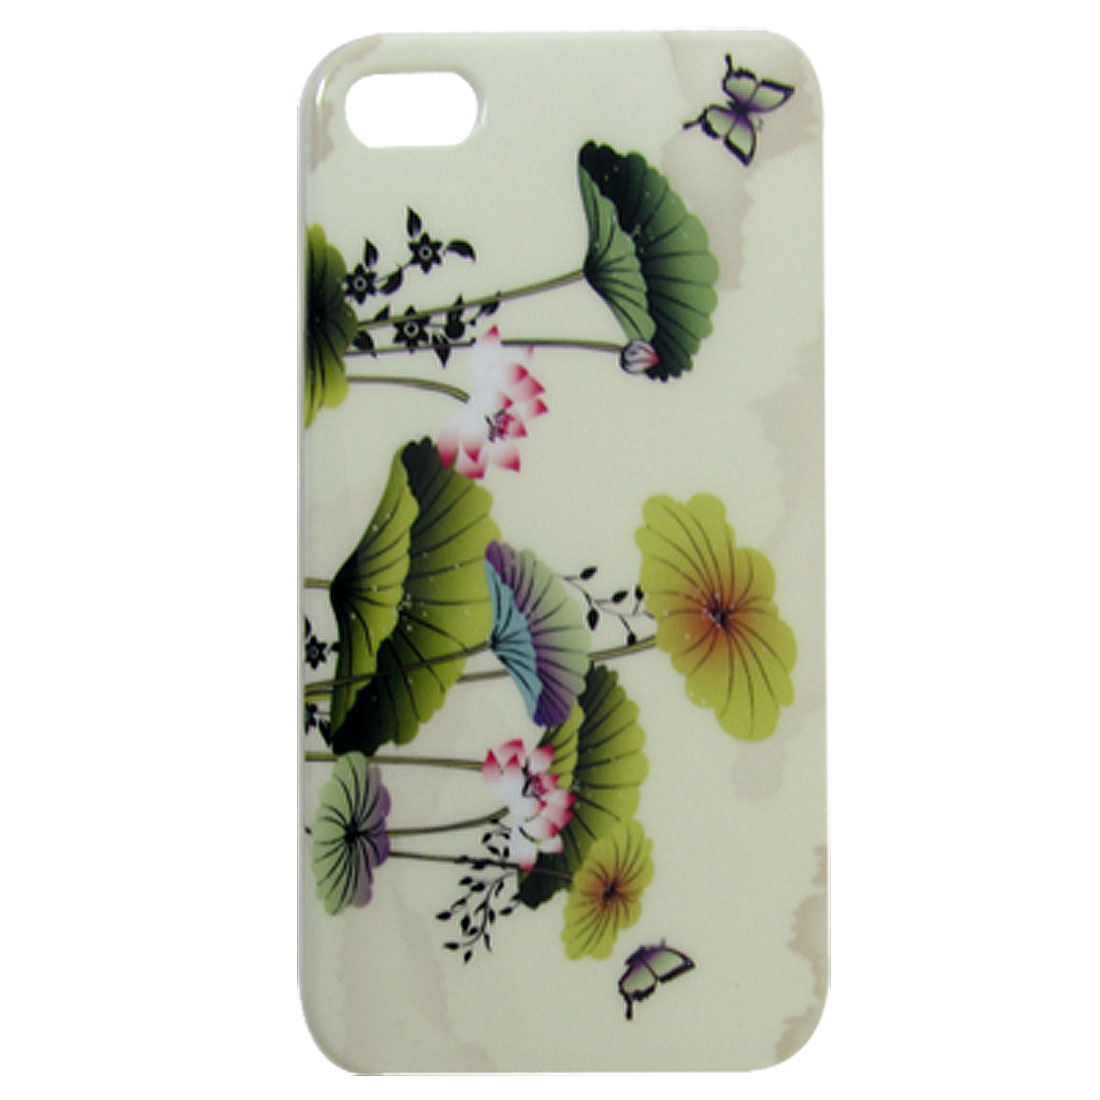 Butterflies Lotus Leaf Print Beige Back Case Protector for iPhone 4 4G 4GS 4S